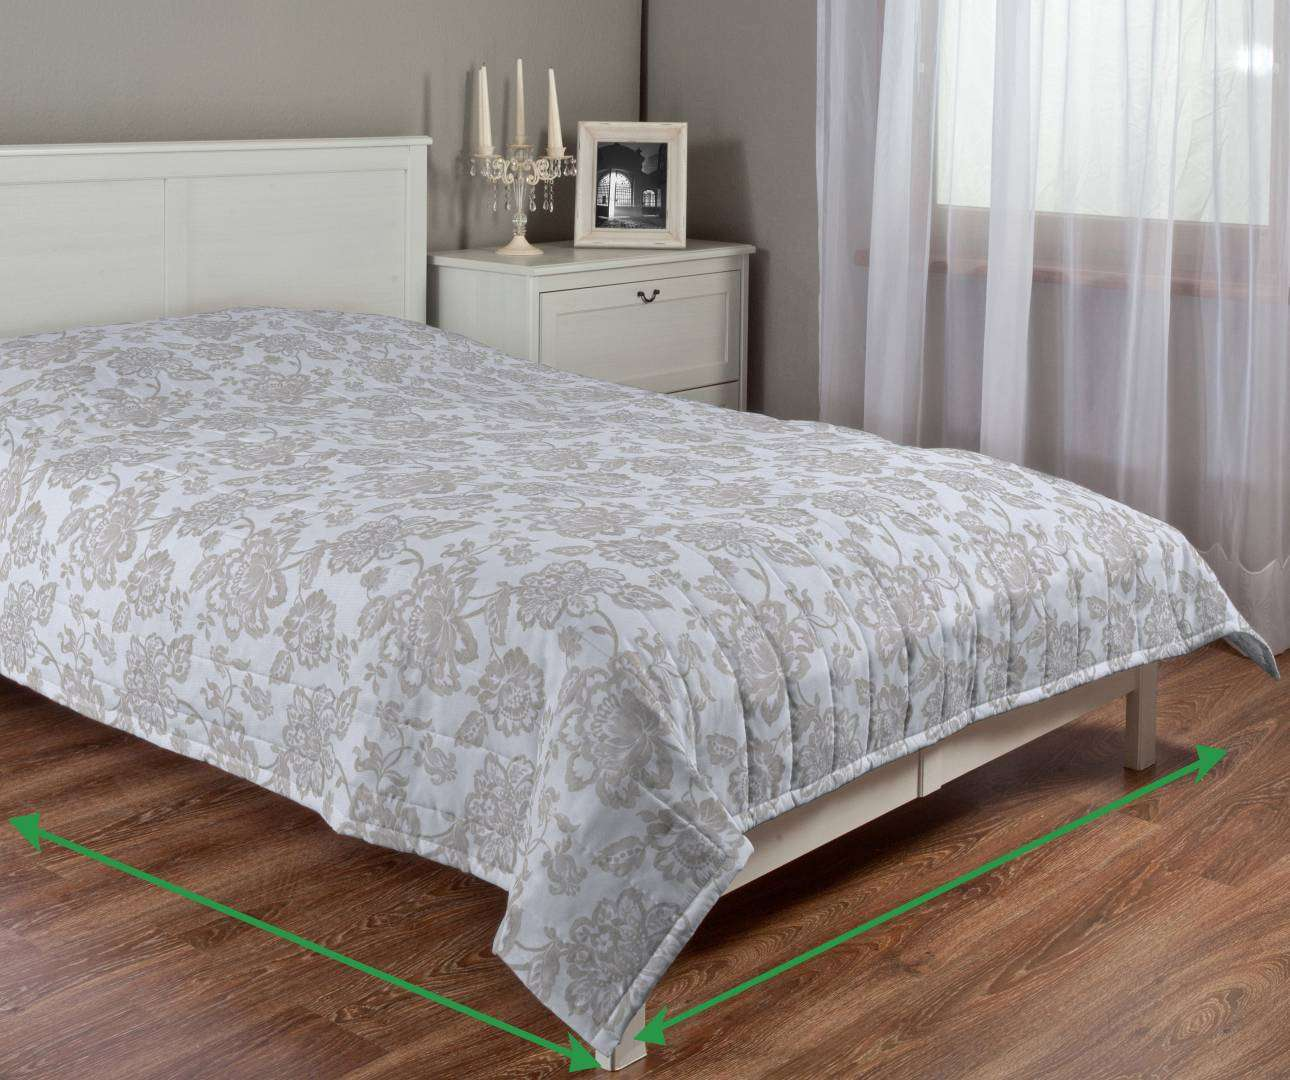 Quilted throw (vertical quilt pattern) in collection Rustica, fabric: 138-23